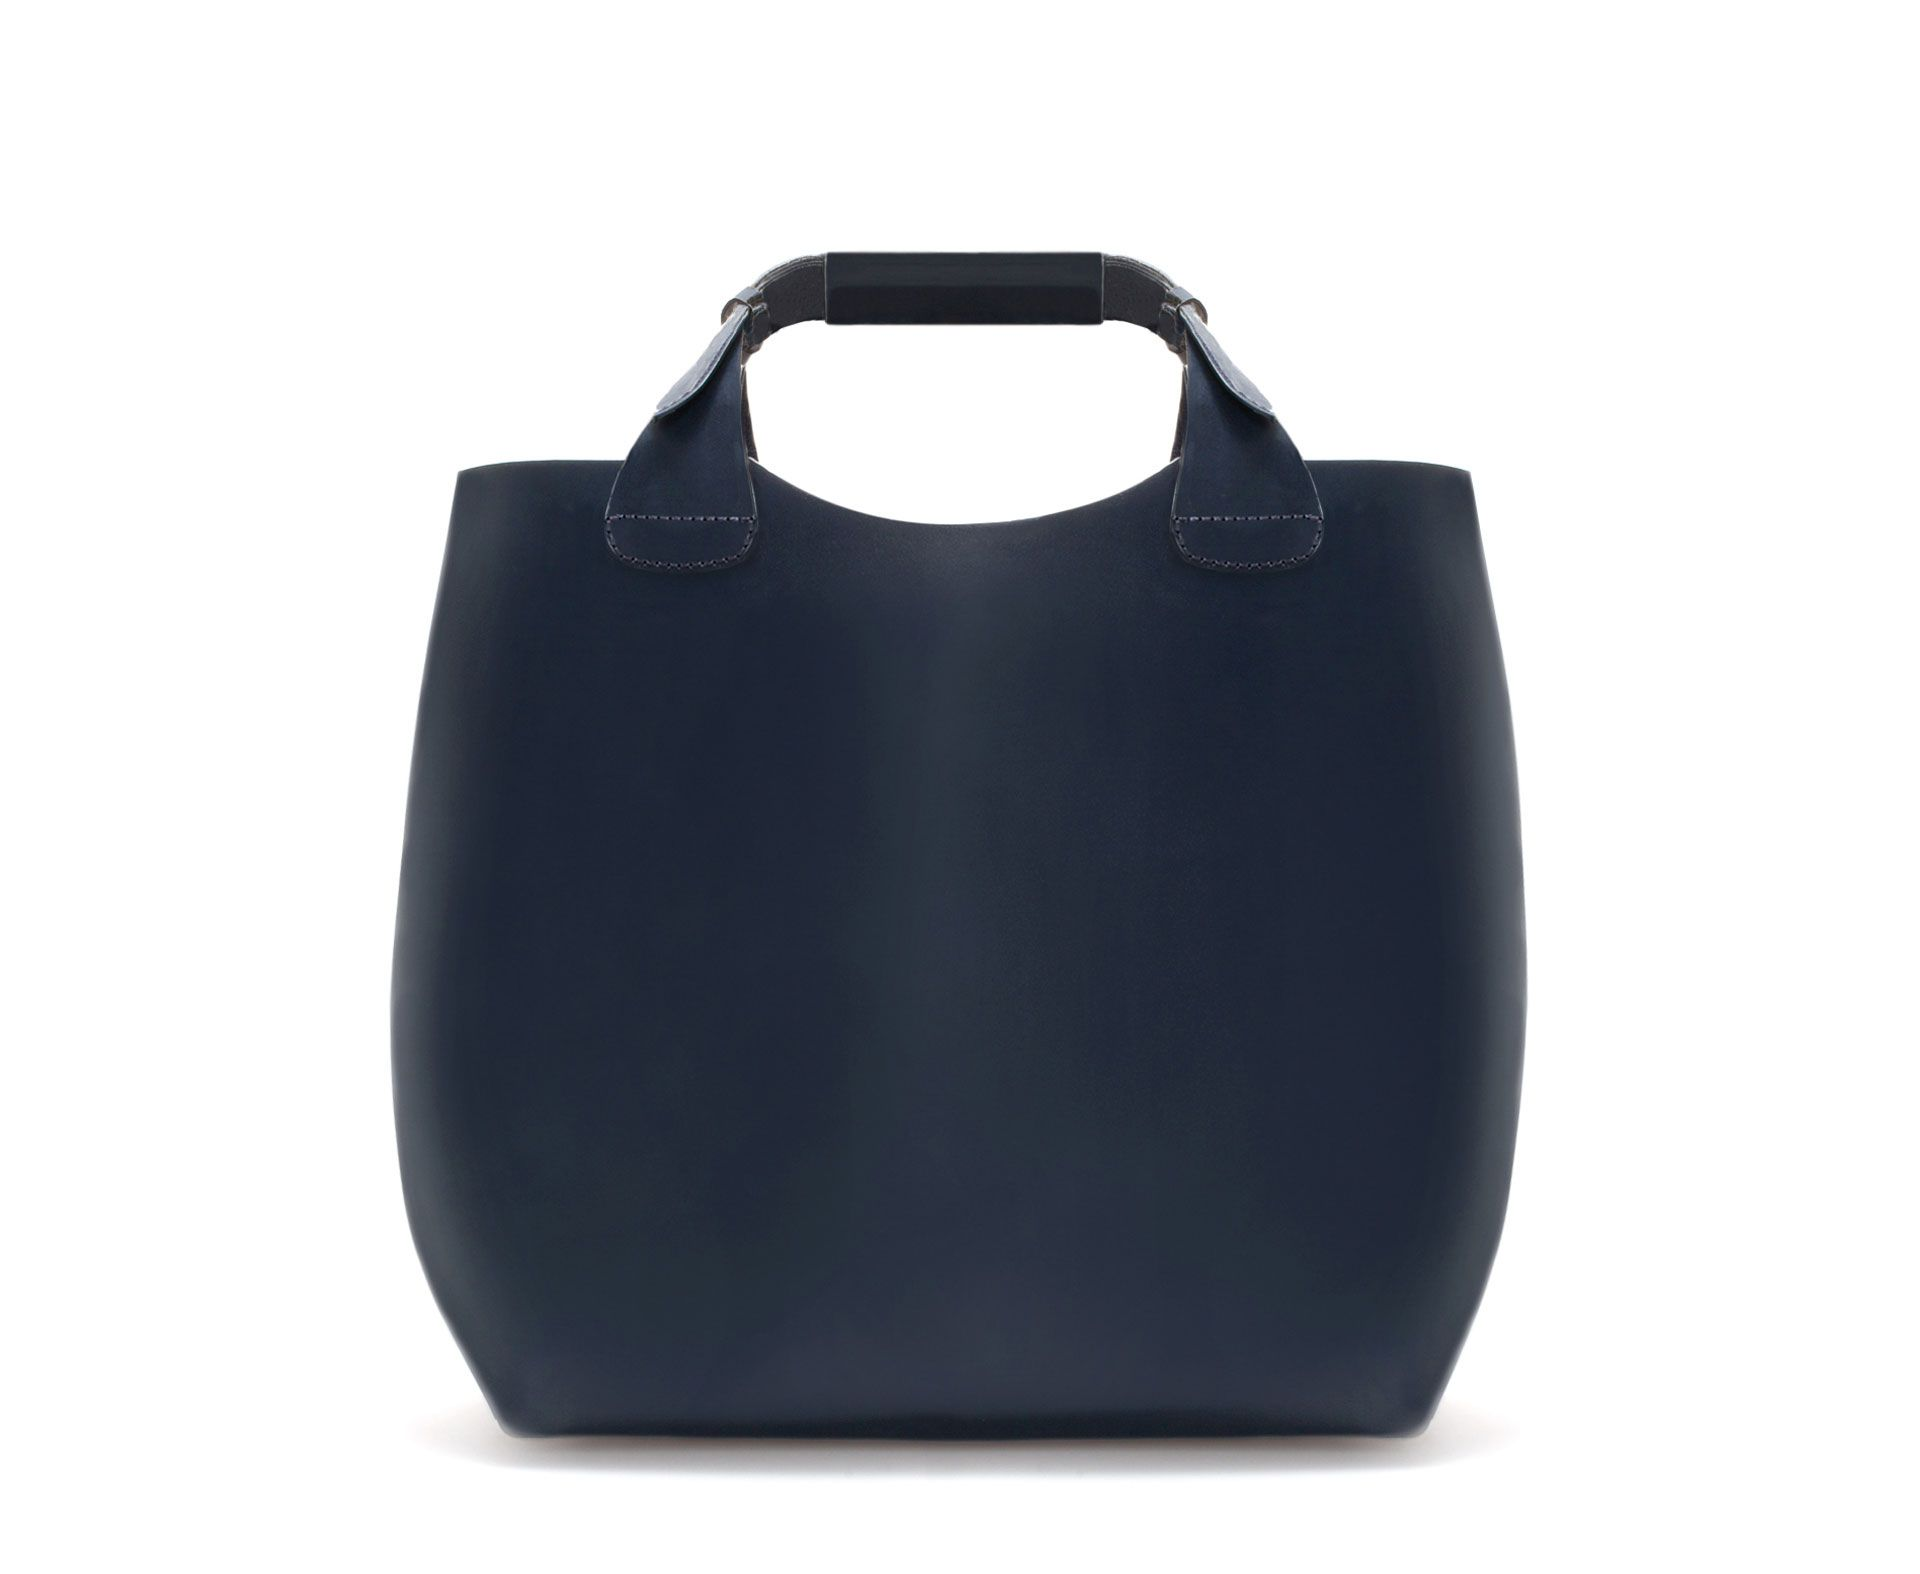 6bf62515a9b ZARA - WOMAN - LEATHER SHOPPER WITH LAMINATED INTERIOR   Bag lady x ...